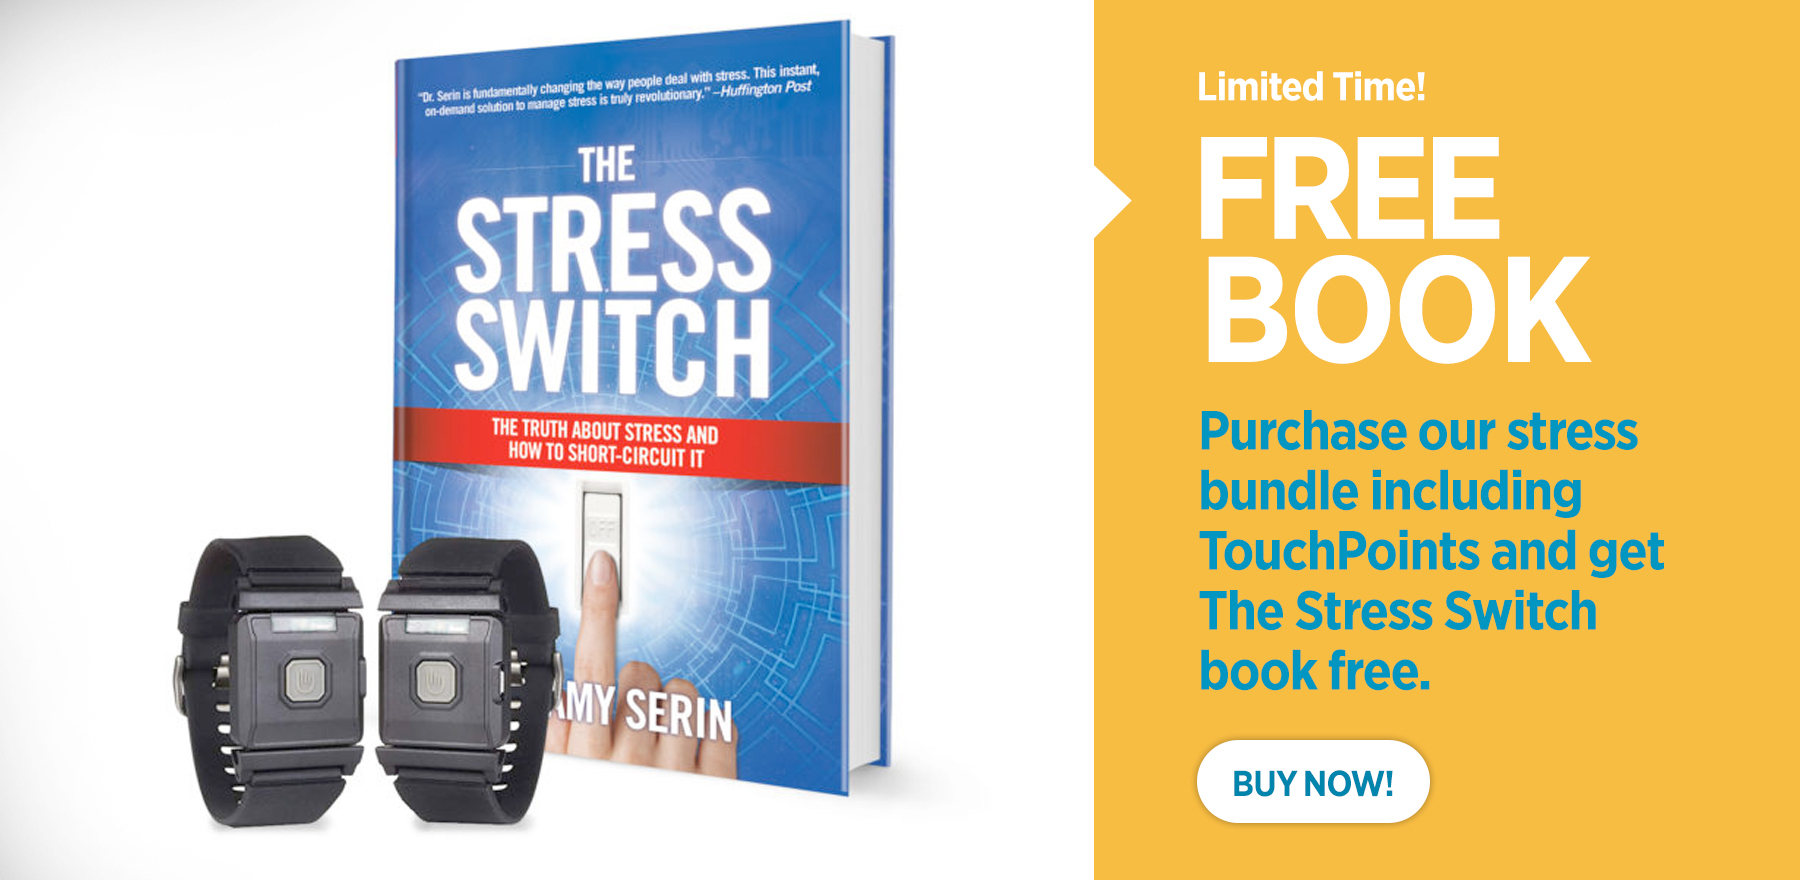 The Stress Switch - Free